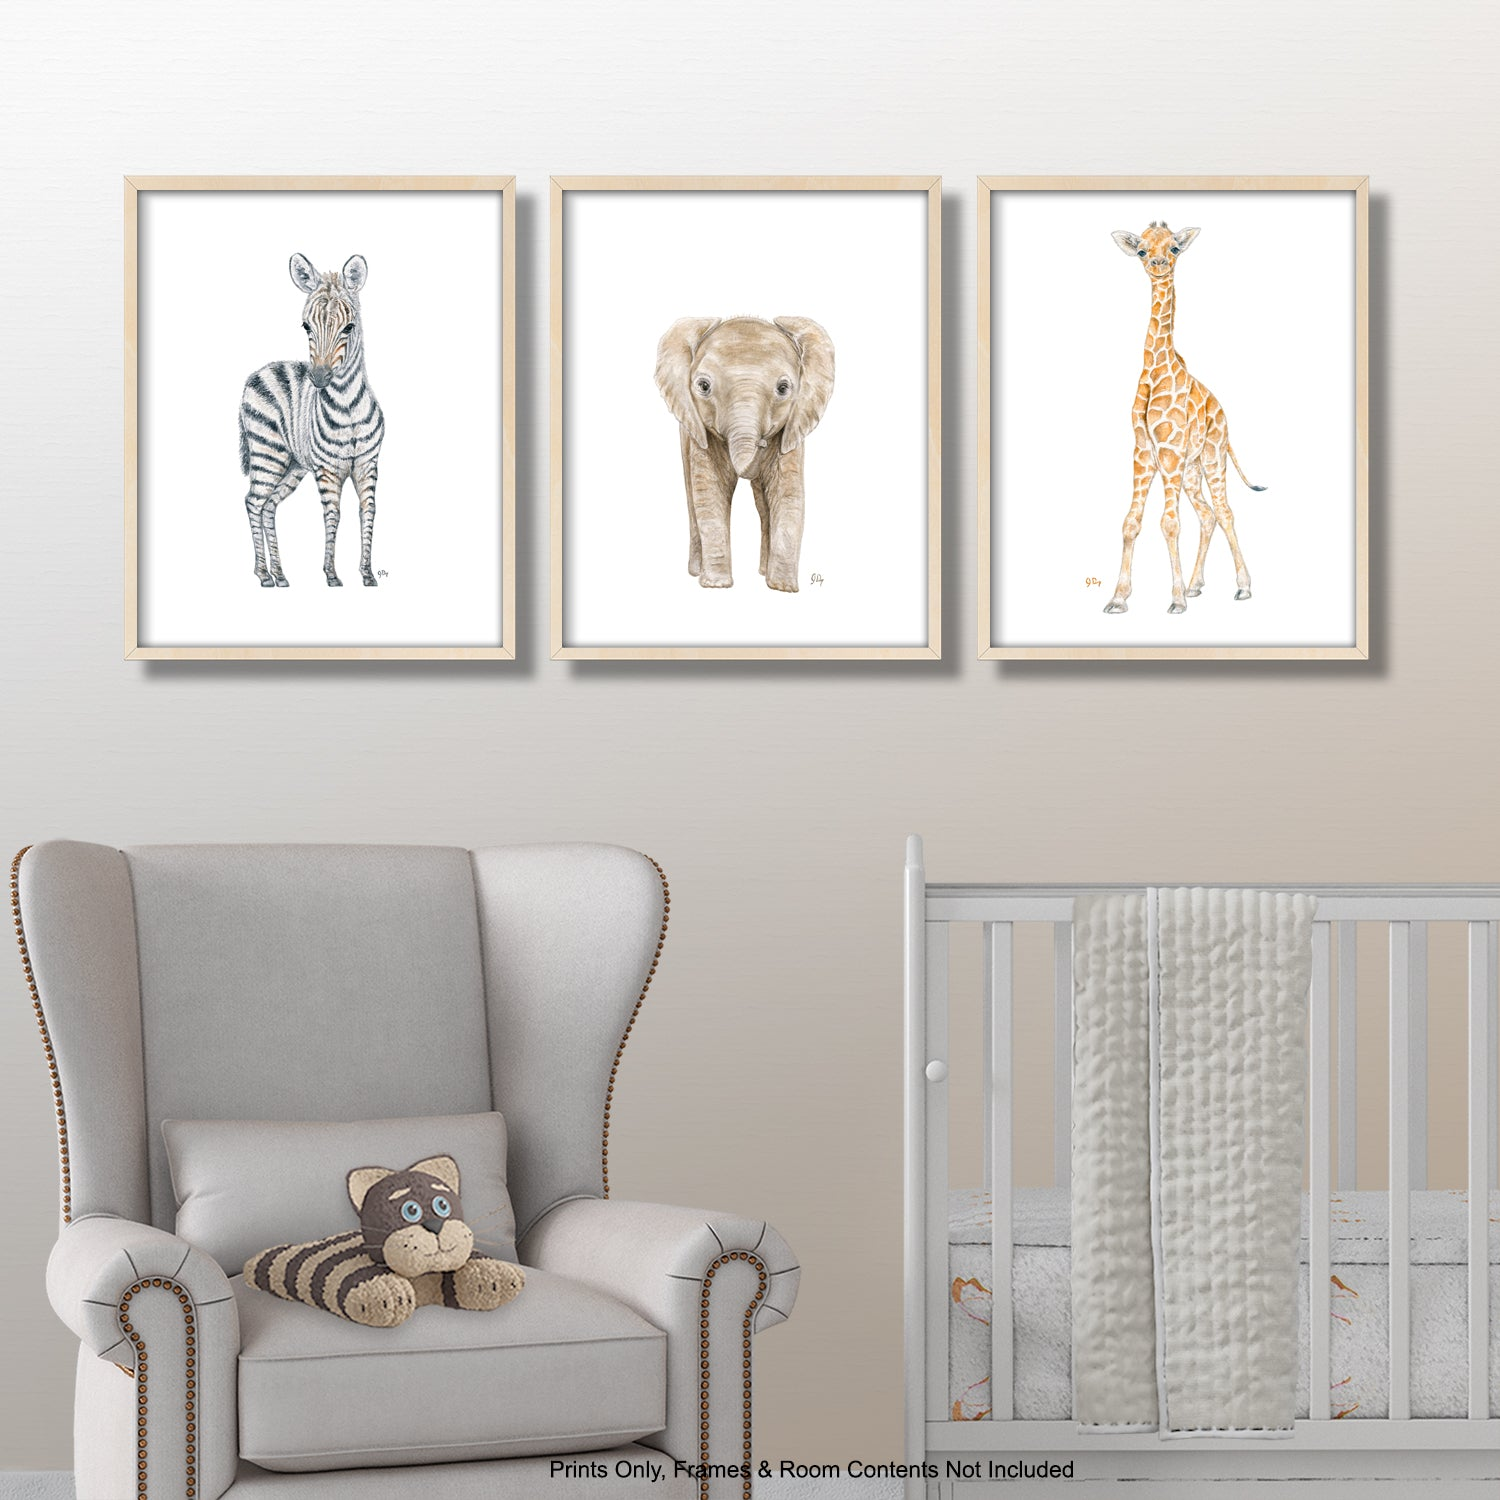 Safari Animal Prints Set of 3